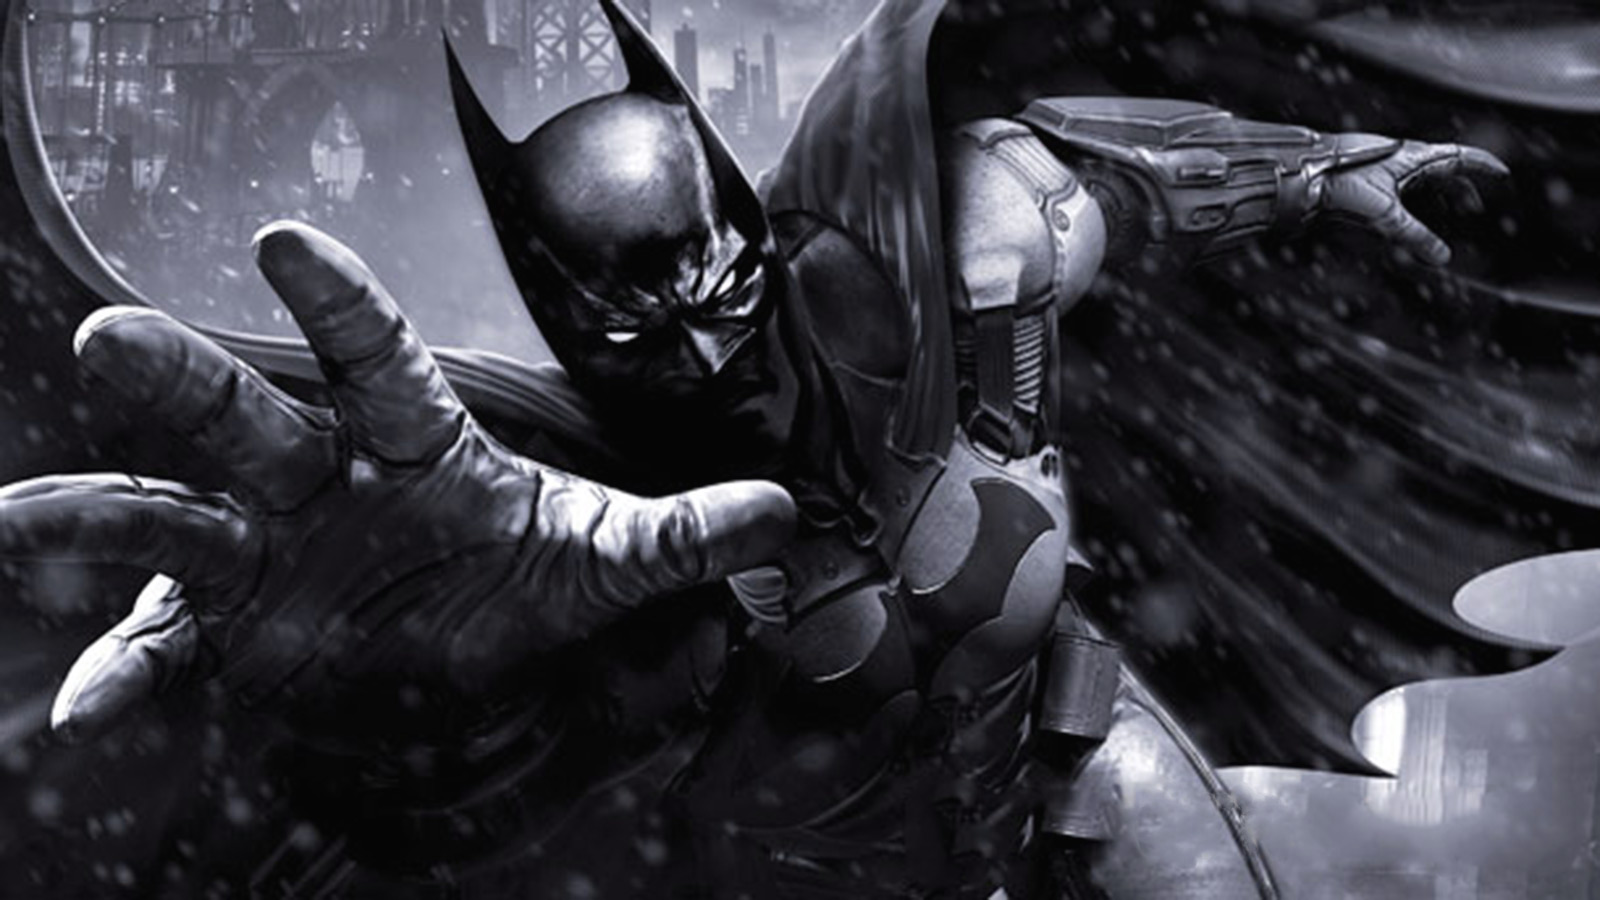 Batman Arkham Origins Background Wallpaper Jpg